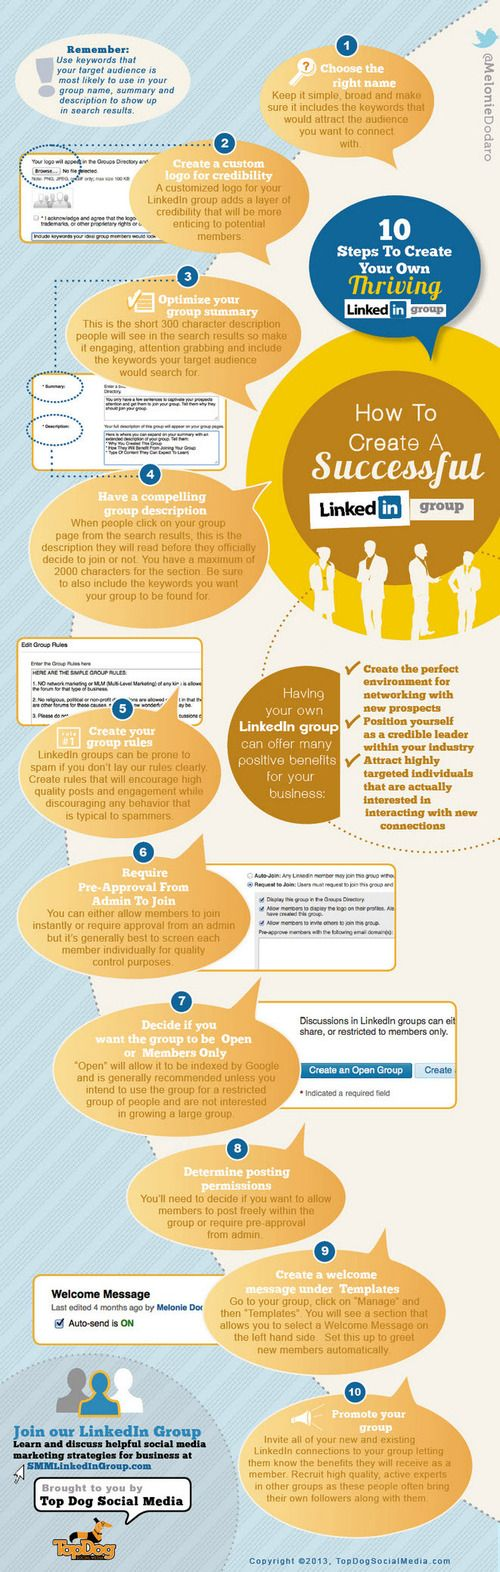 10 Steps to Create Your Own Thriving LinkedIn Group  (SMR)